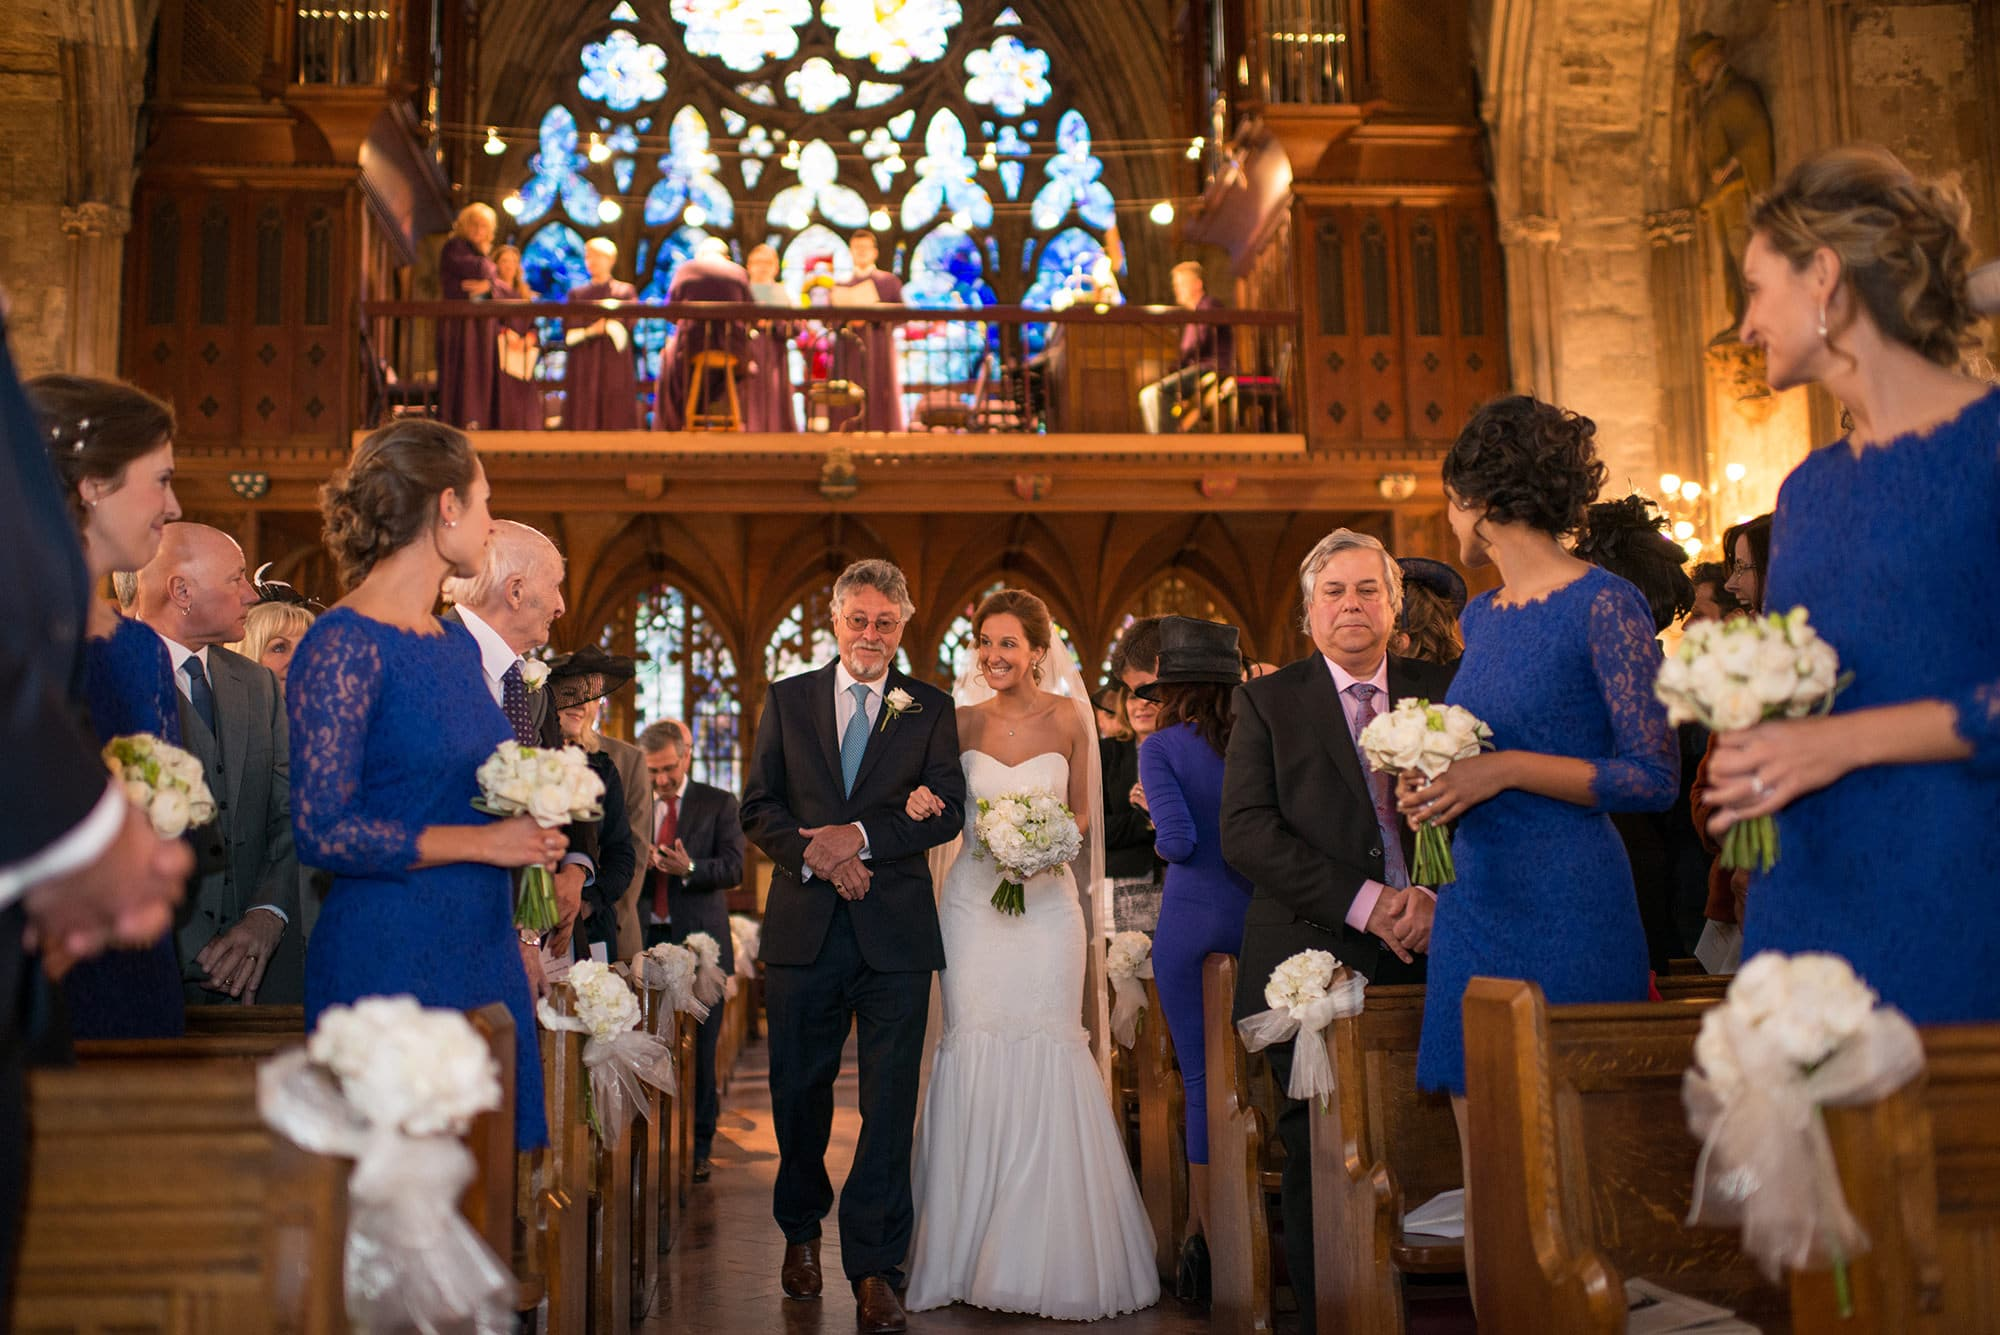 st etheldreda wedding photos